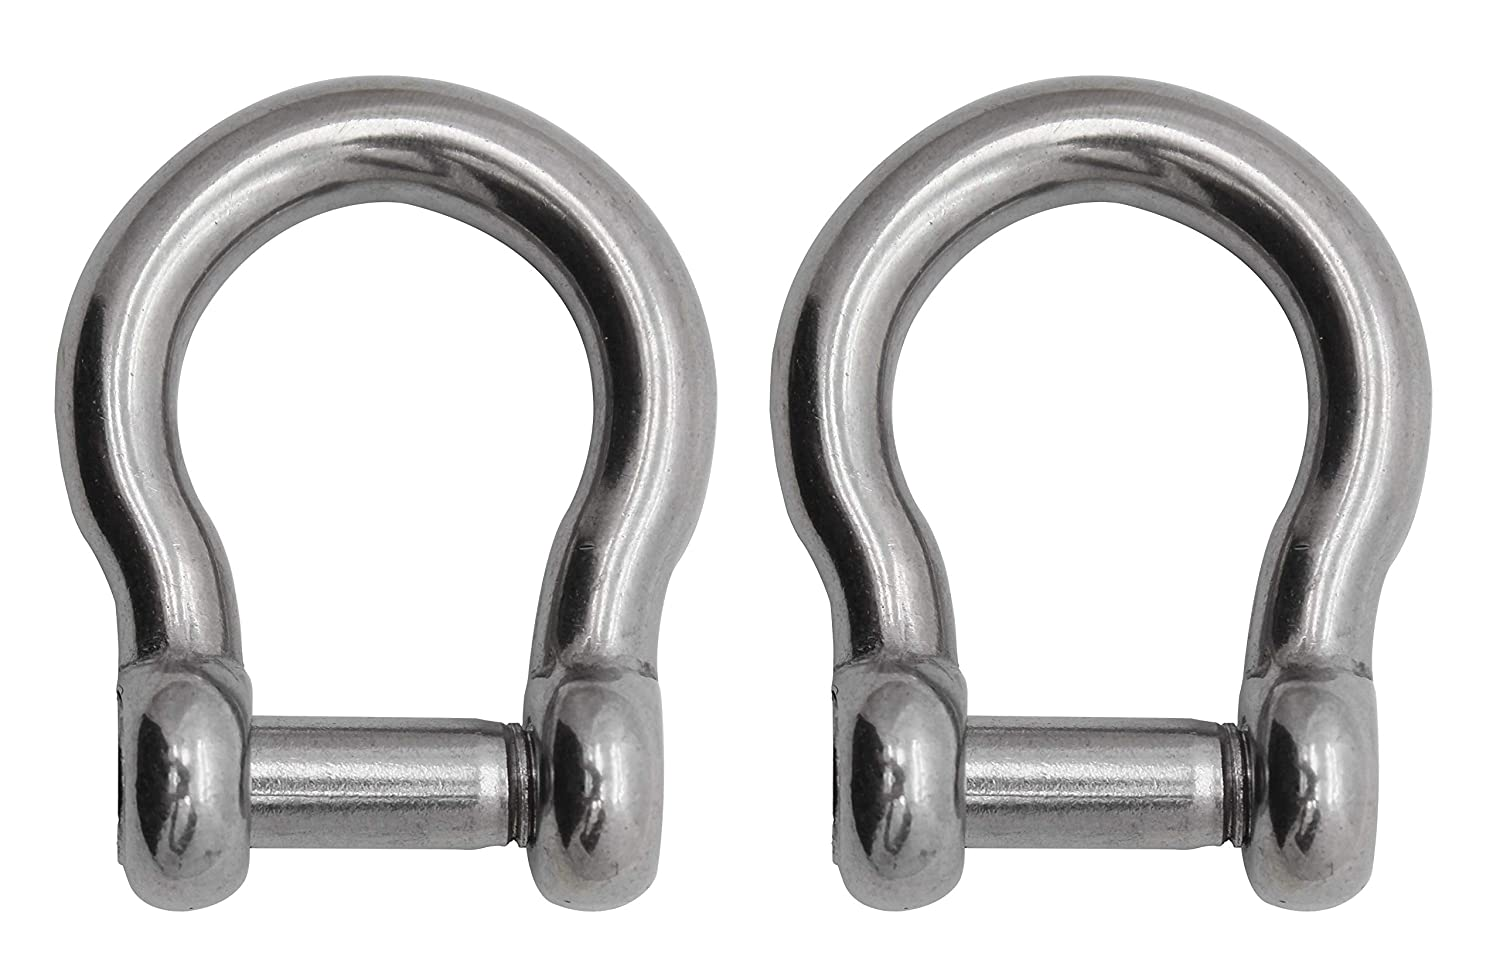 Extreme Max Silver Standard 3006.8405 BoatTector Stainless Steel Bow Shackle with No-Snag Pin-1//4